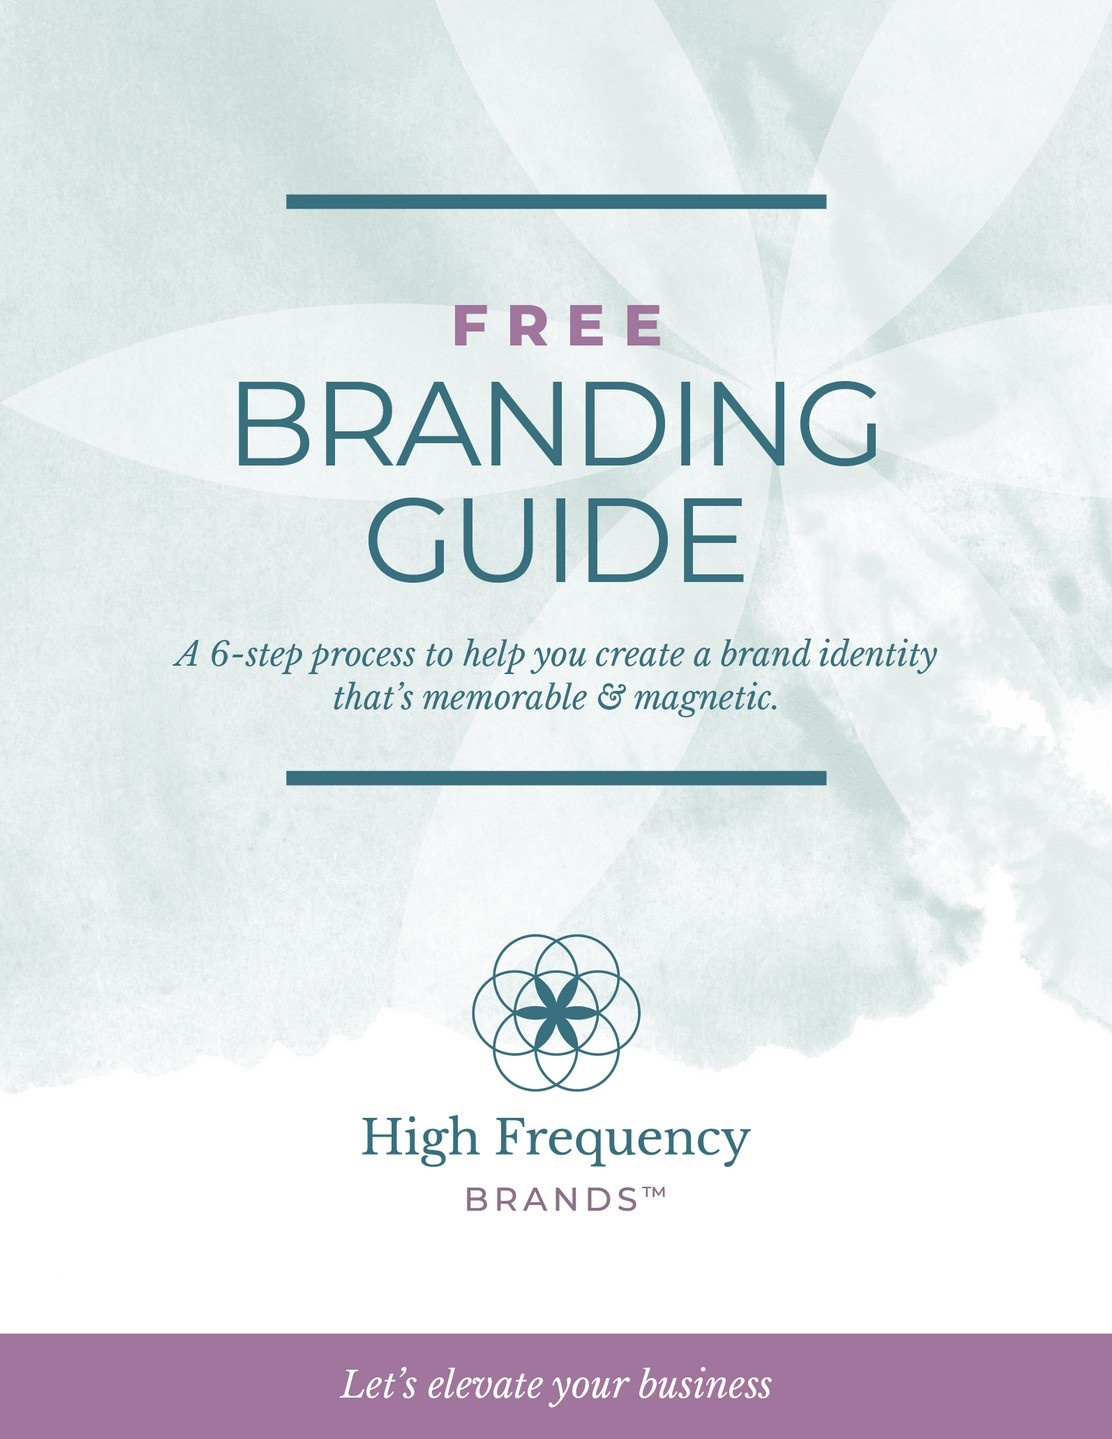 FREE Branding Guide by High Frequency Brands